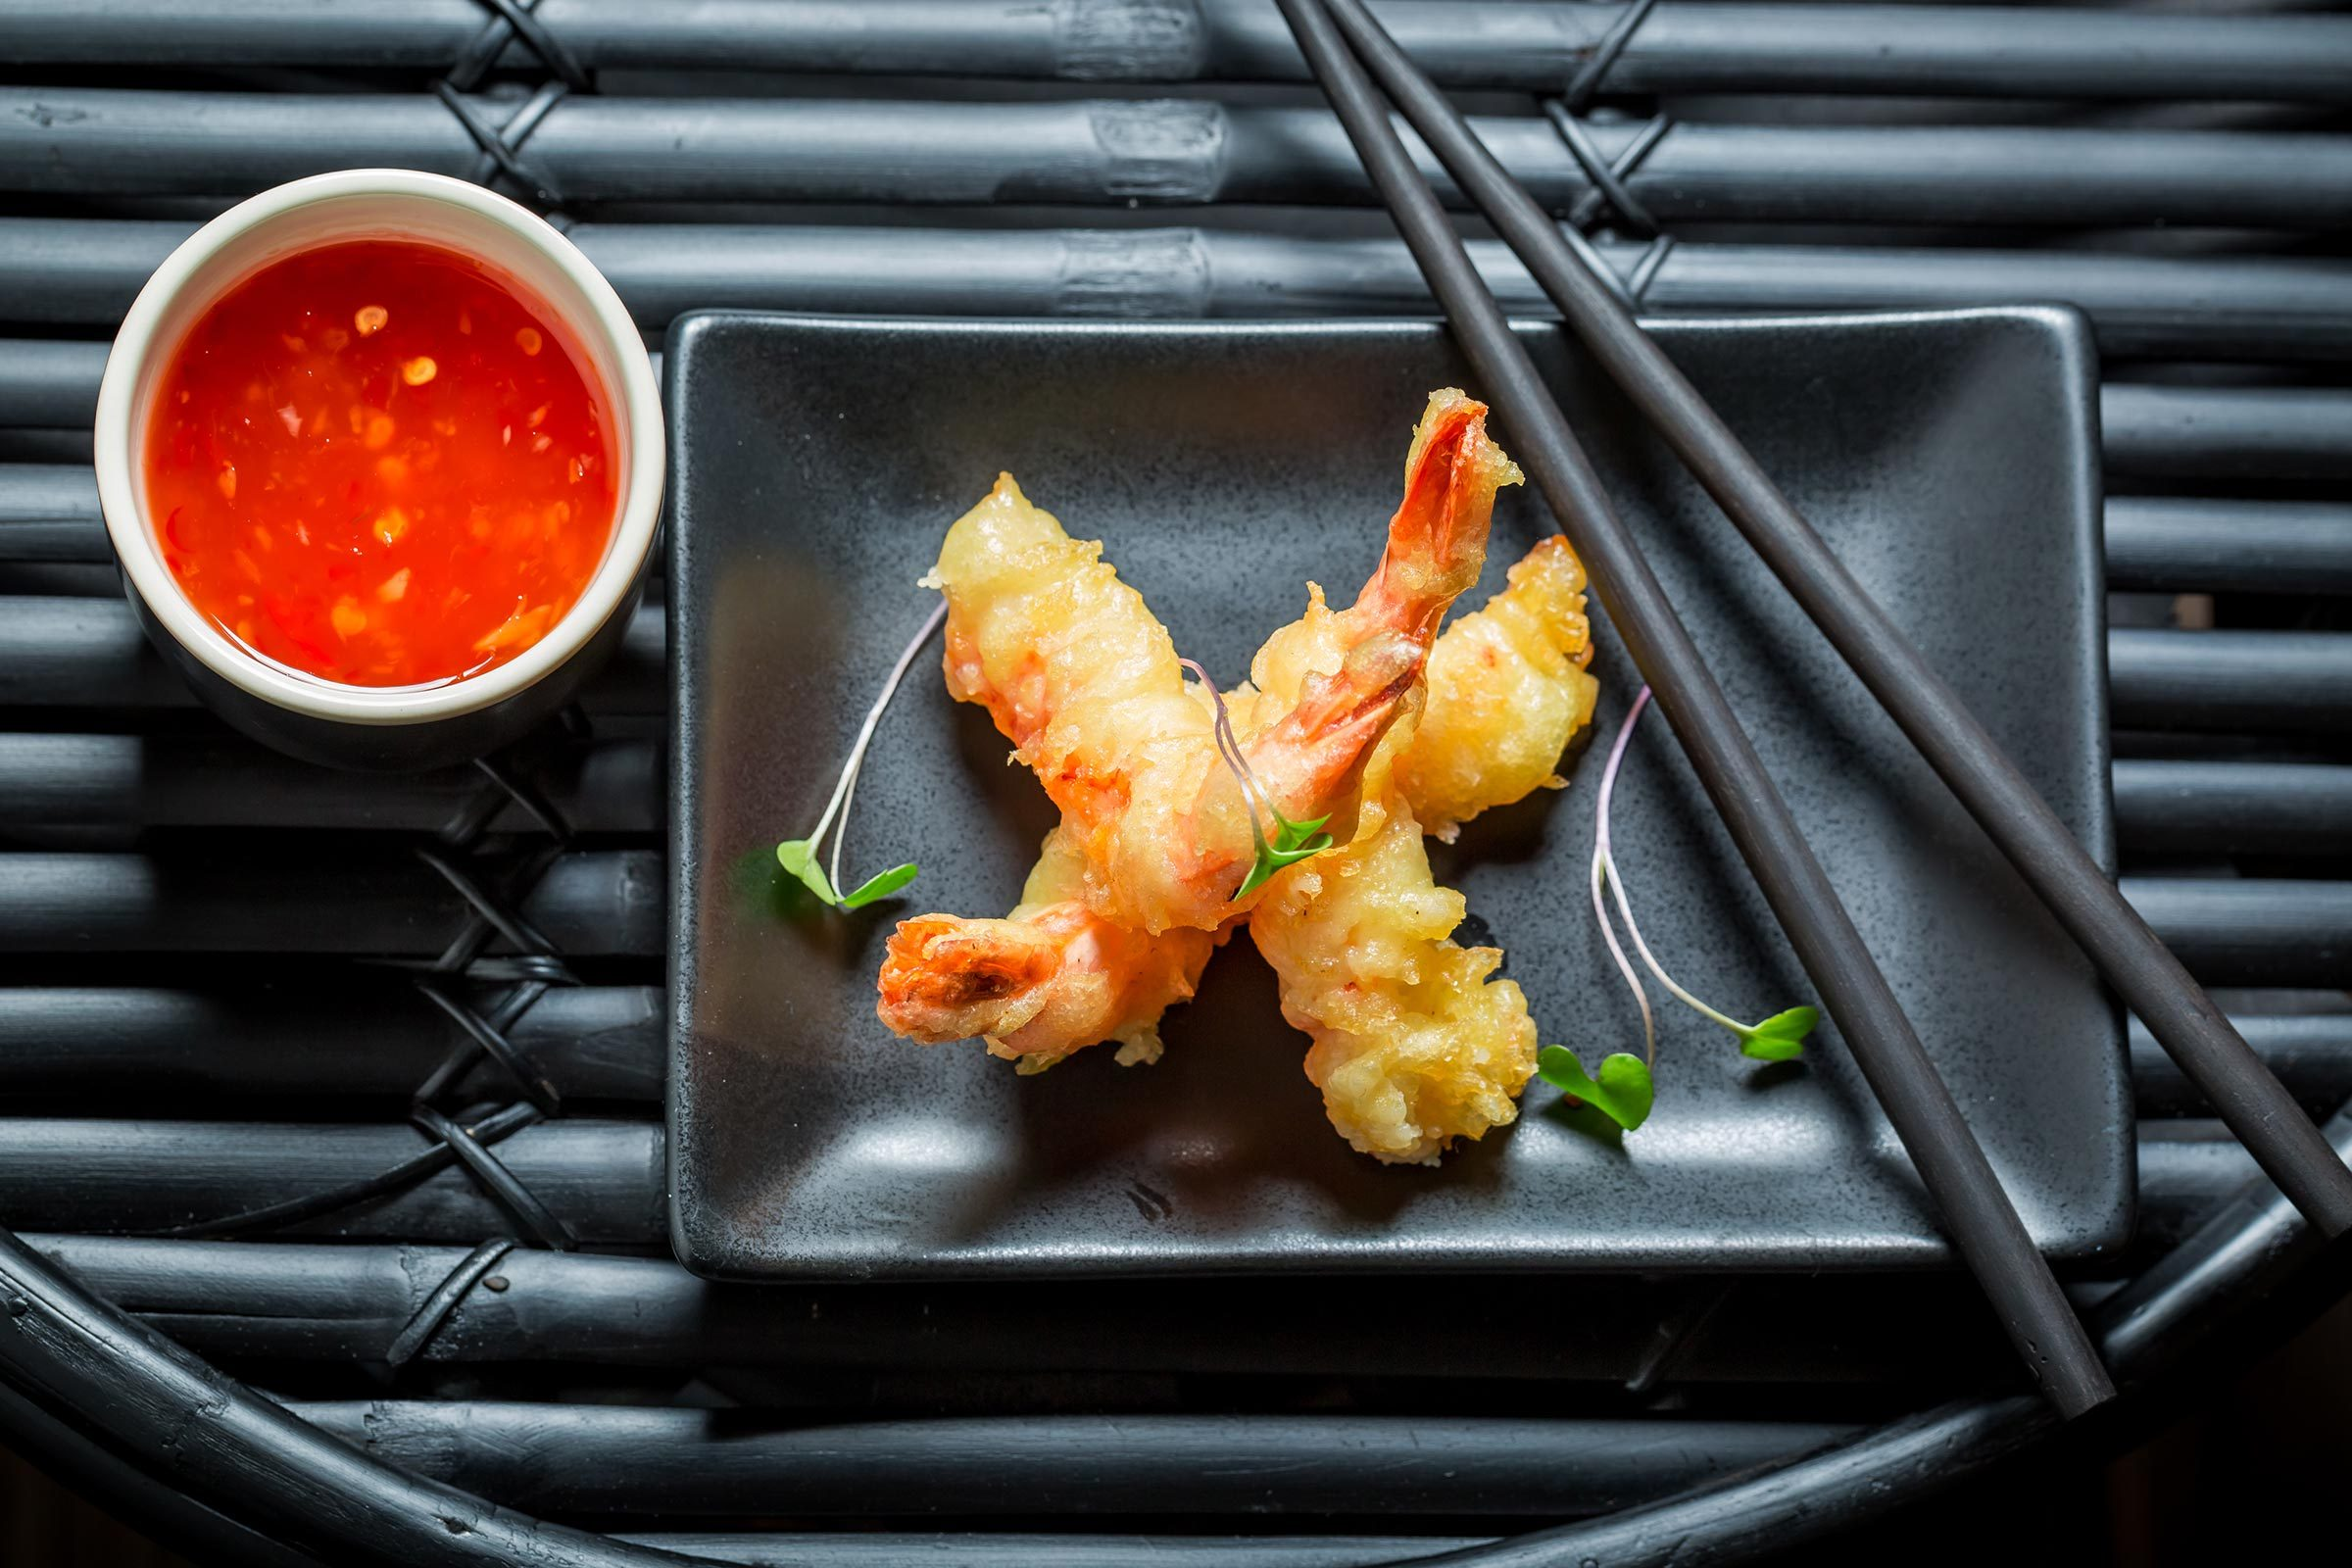 Fried shrimp tempura on a black plate.